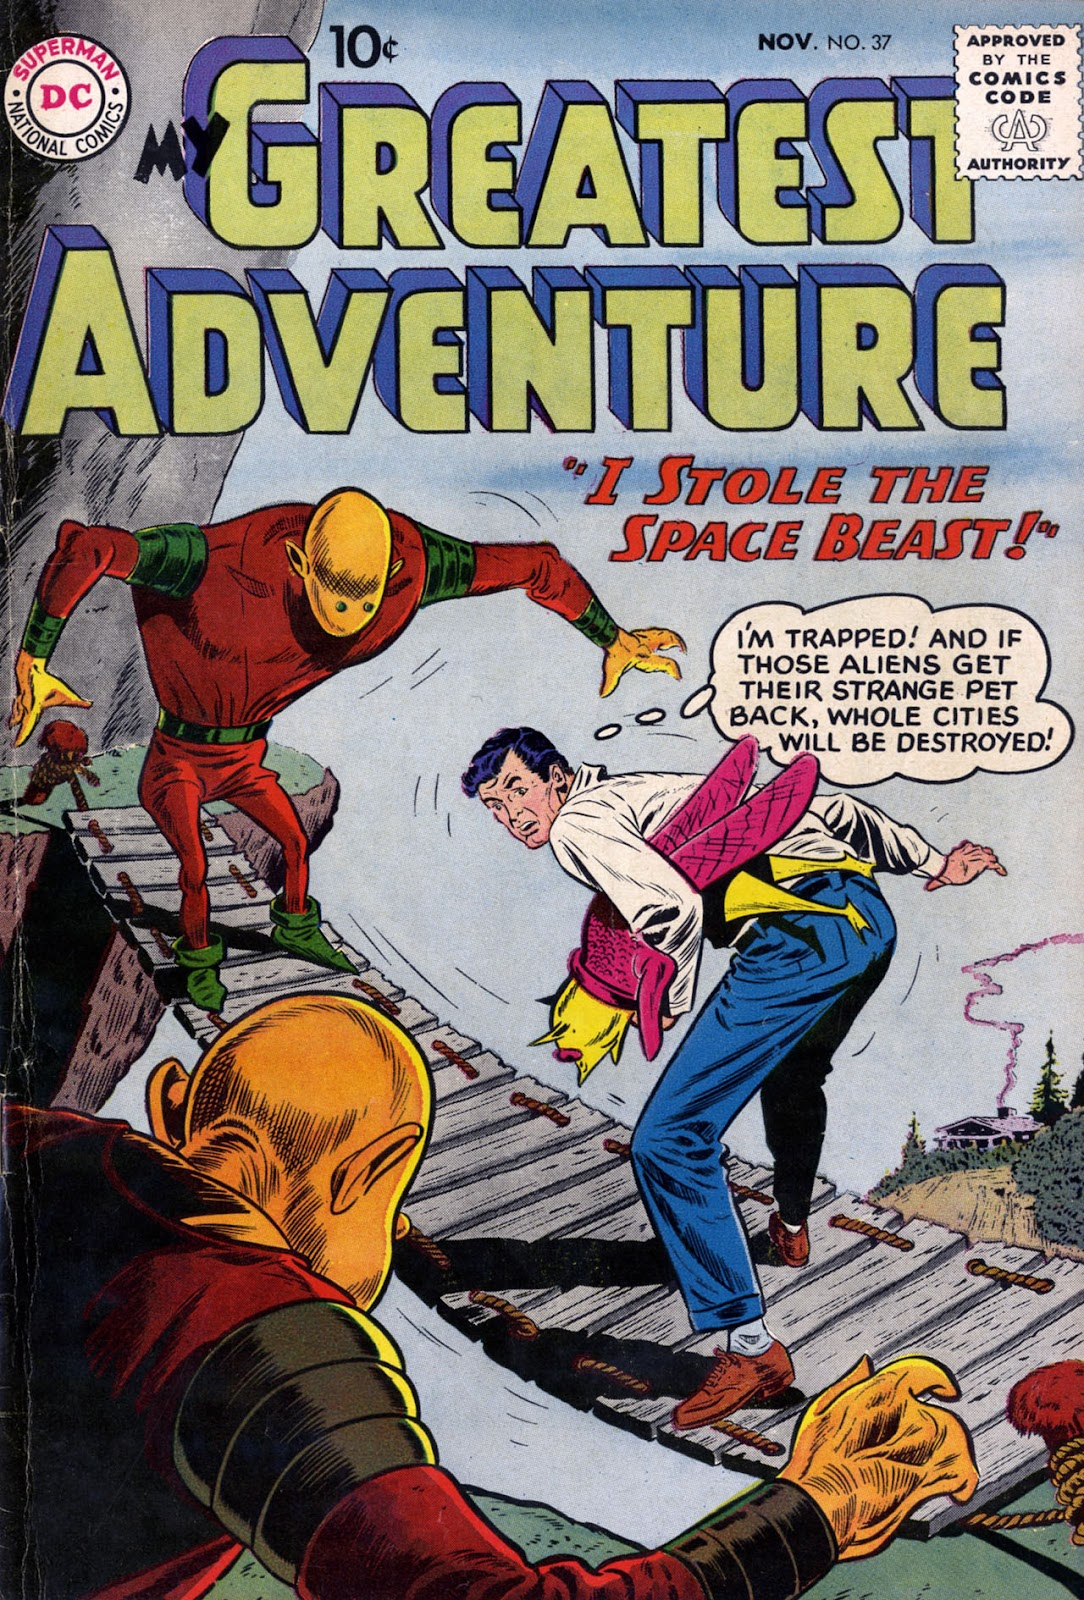 My Greatest Adventure (1955) issue 37 - Page 1